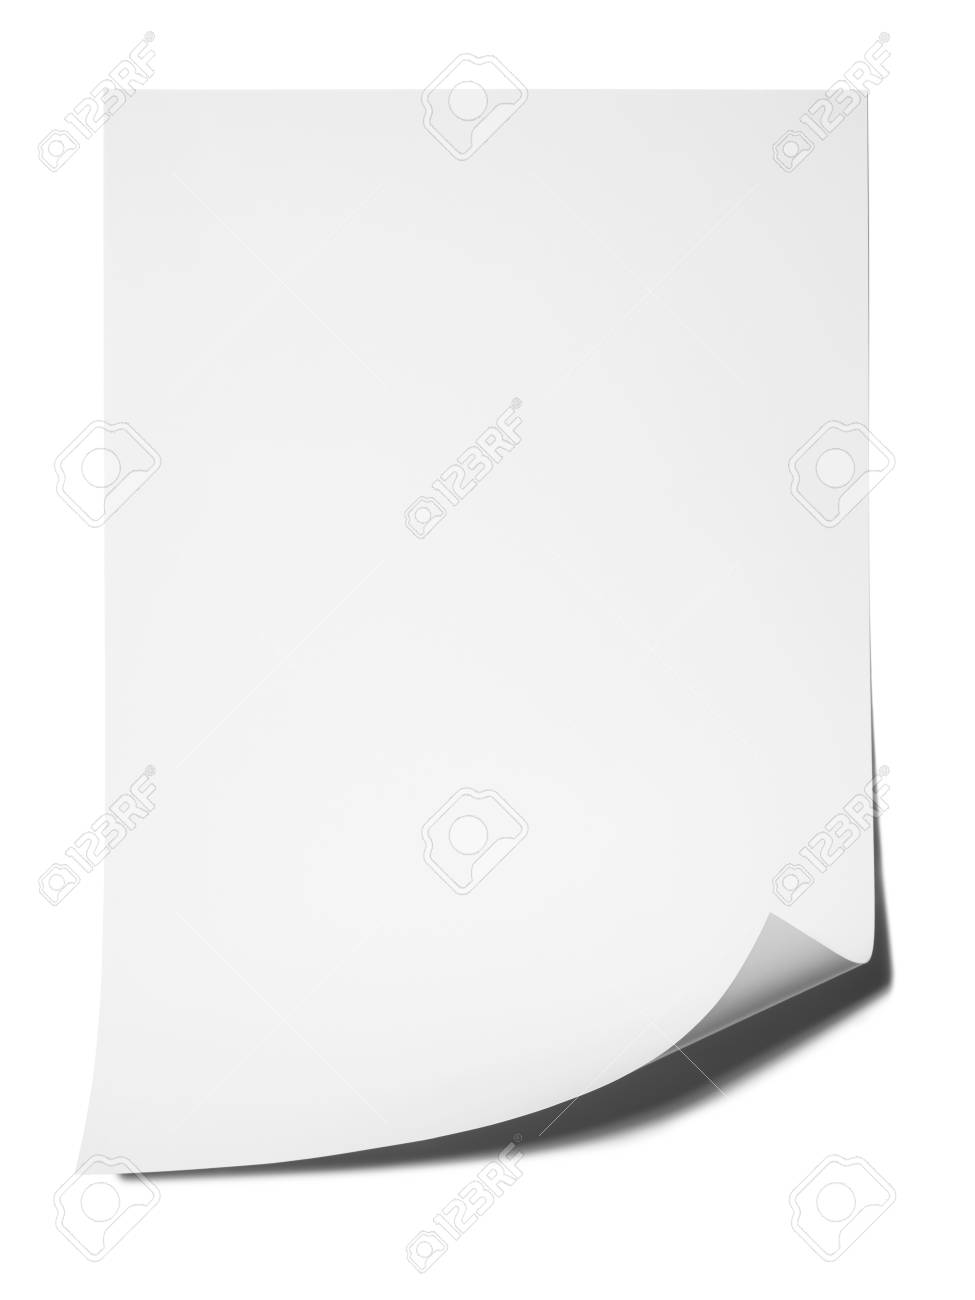 photograph of blank piece of paper with natural shadow and curled